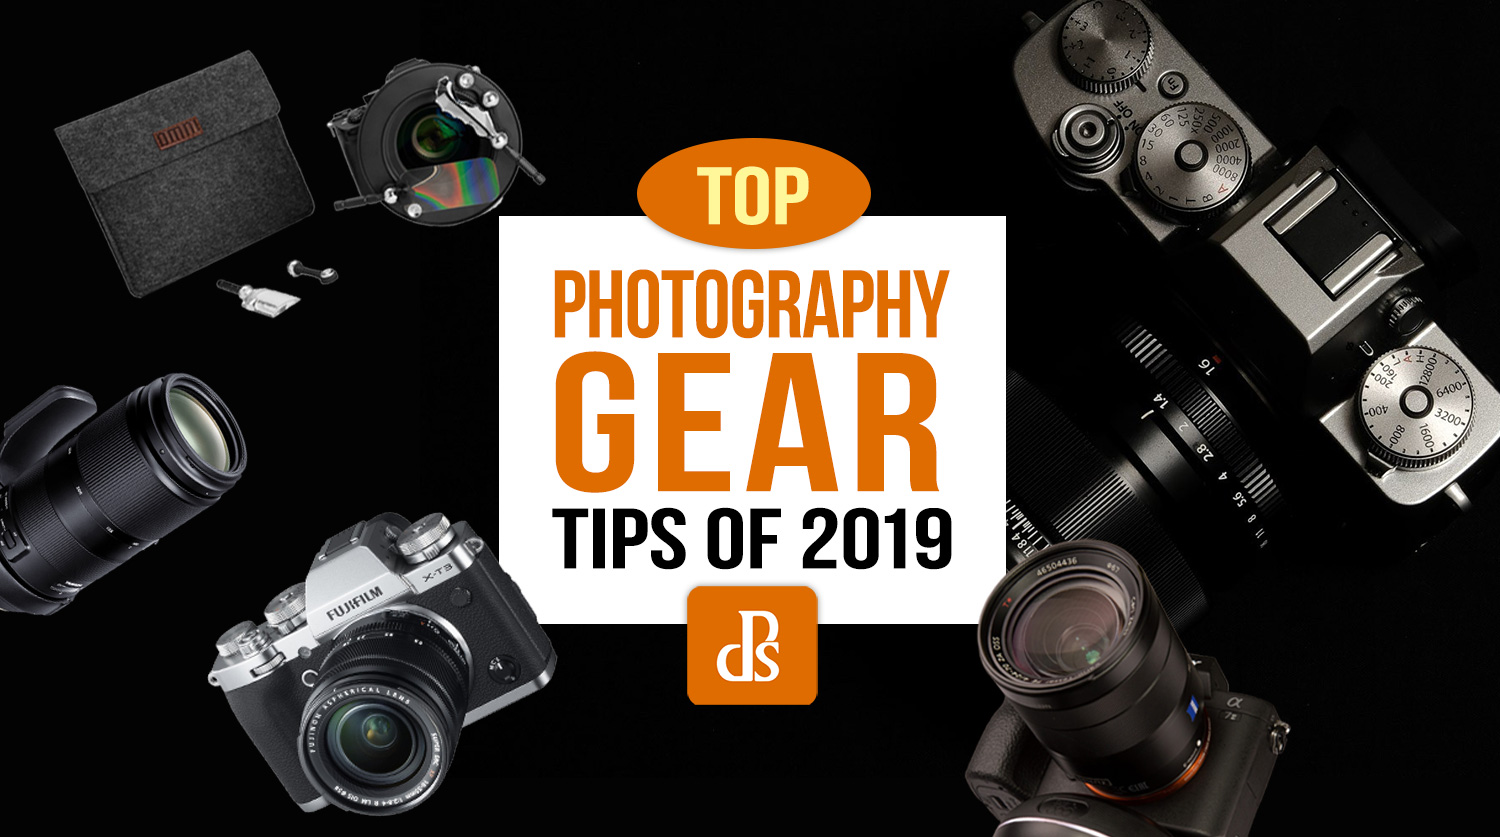 https://i2.wp.com/digital-photography-school.com/wp-content/uploads/2019/12/dps-top-photography-gear-tips-2019.jpg?resize=1500%2C837&ssl=1